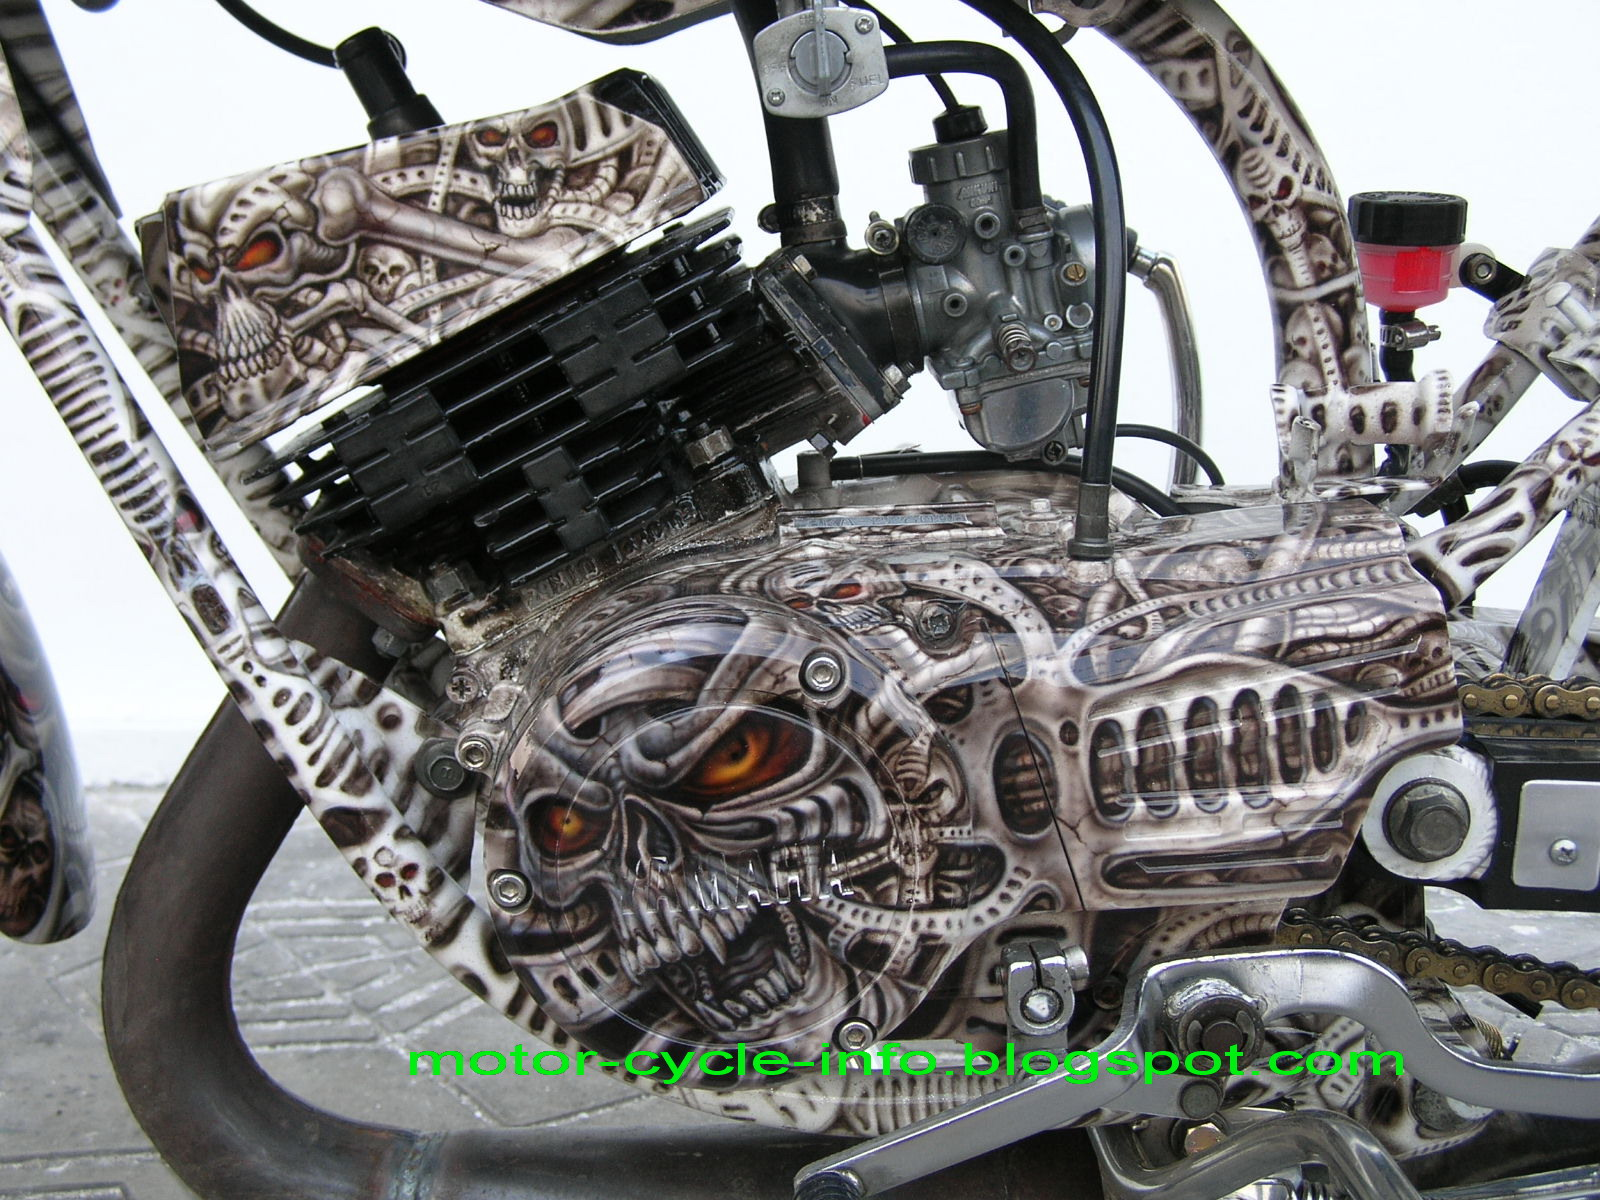 machine airbrush rx king with skull theme make yamaha RX king more  title=